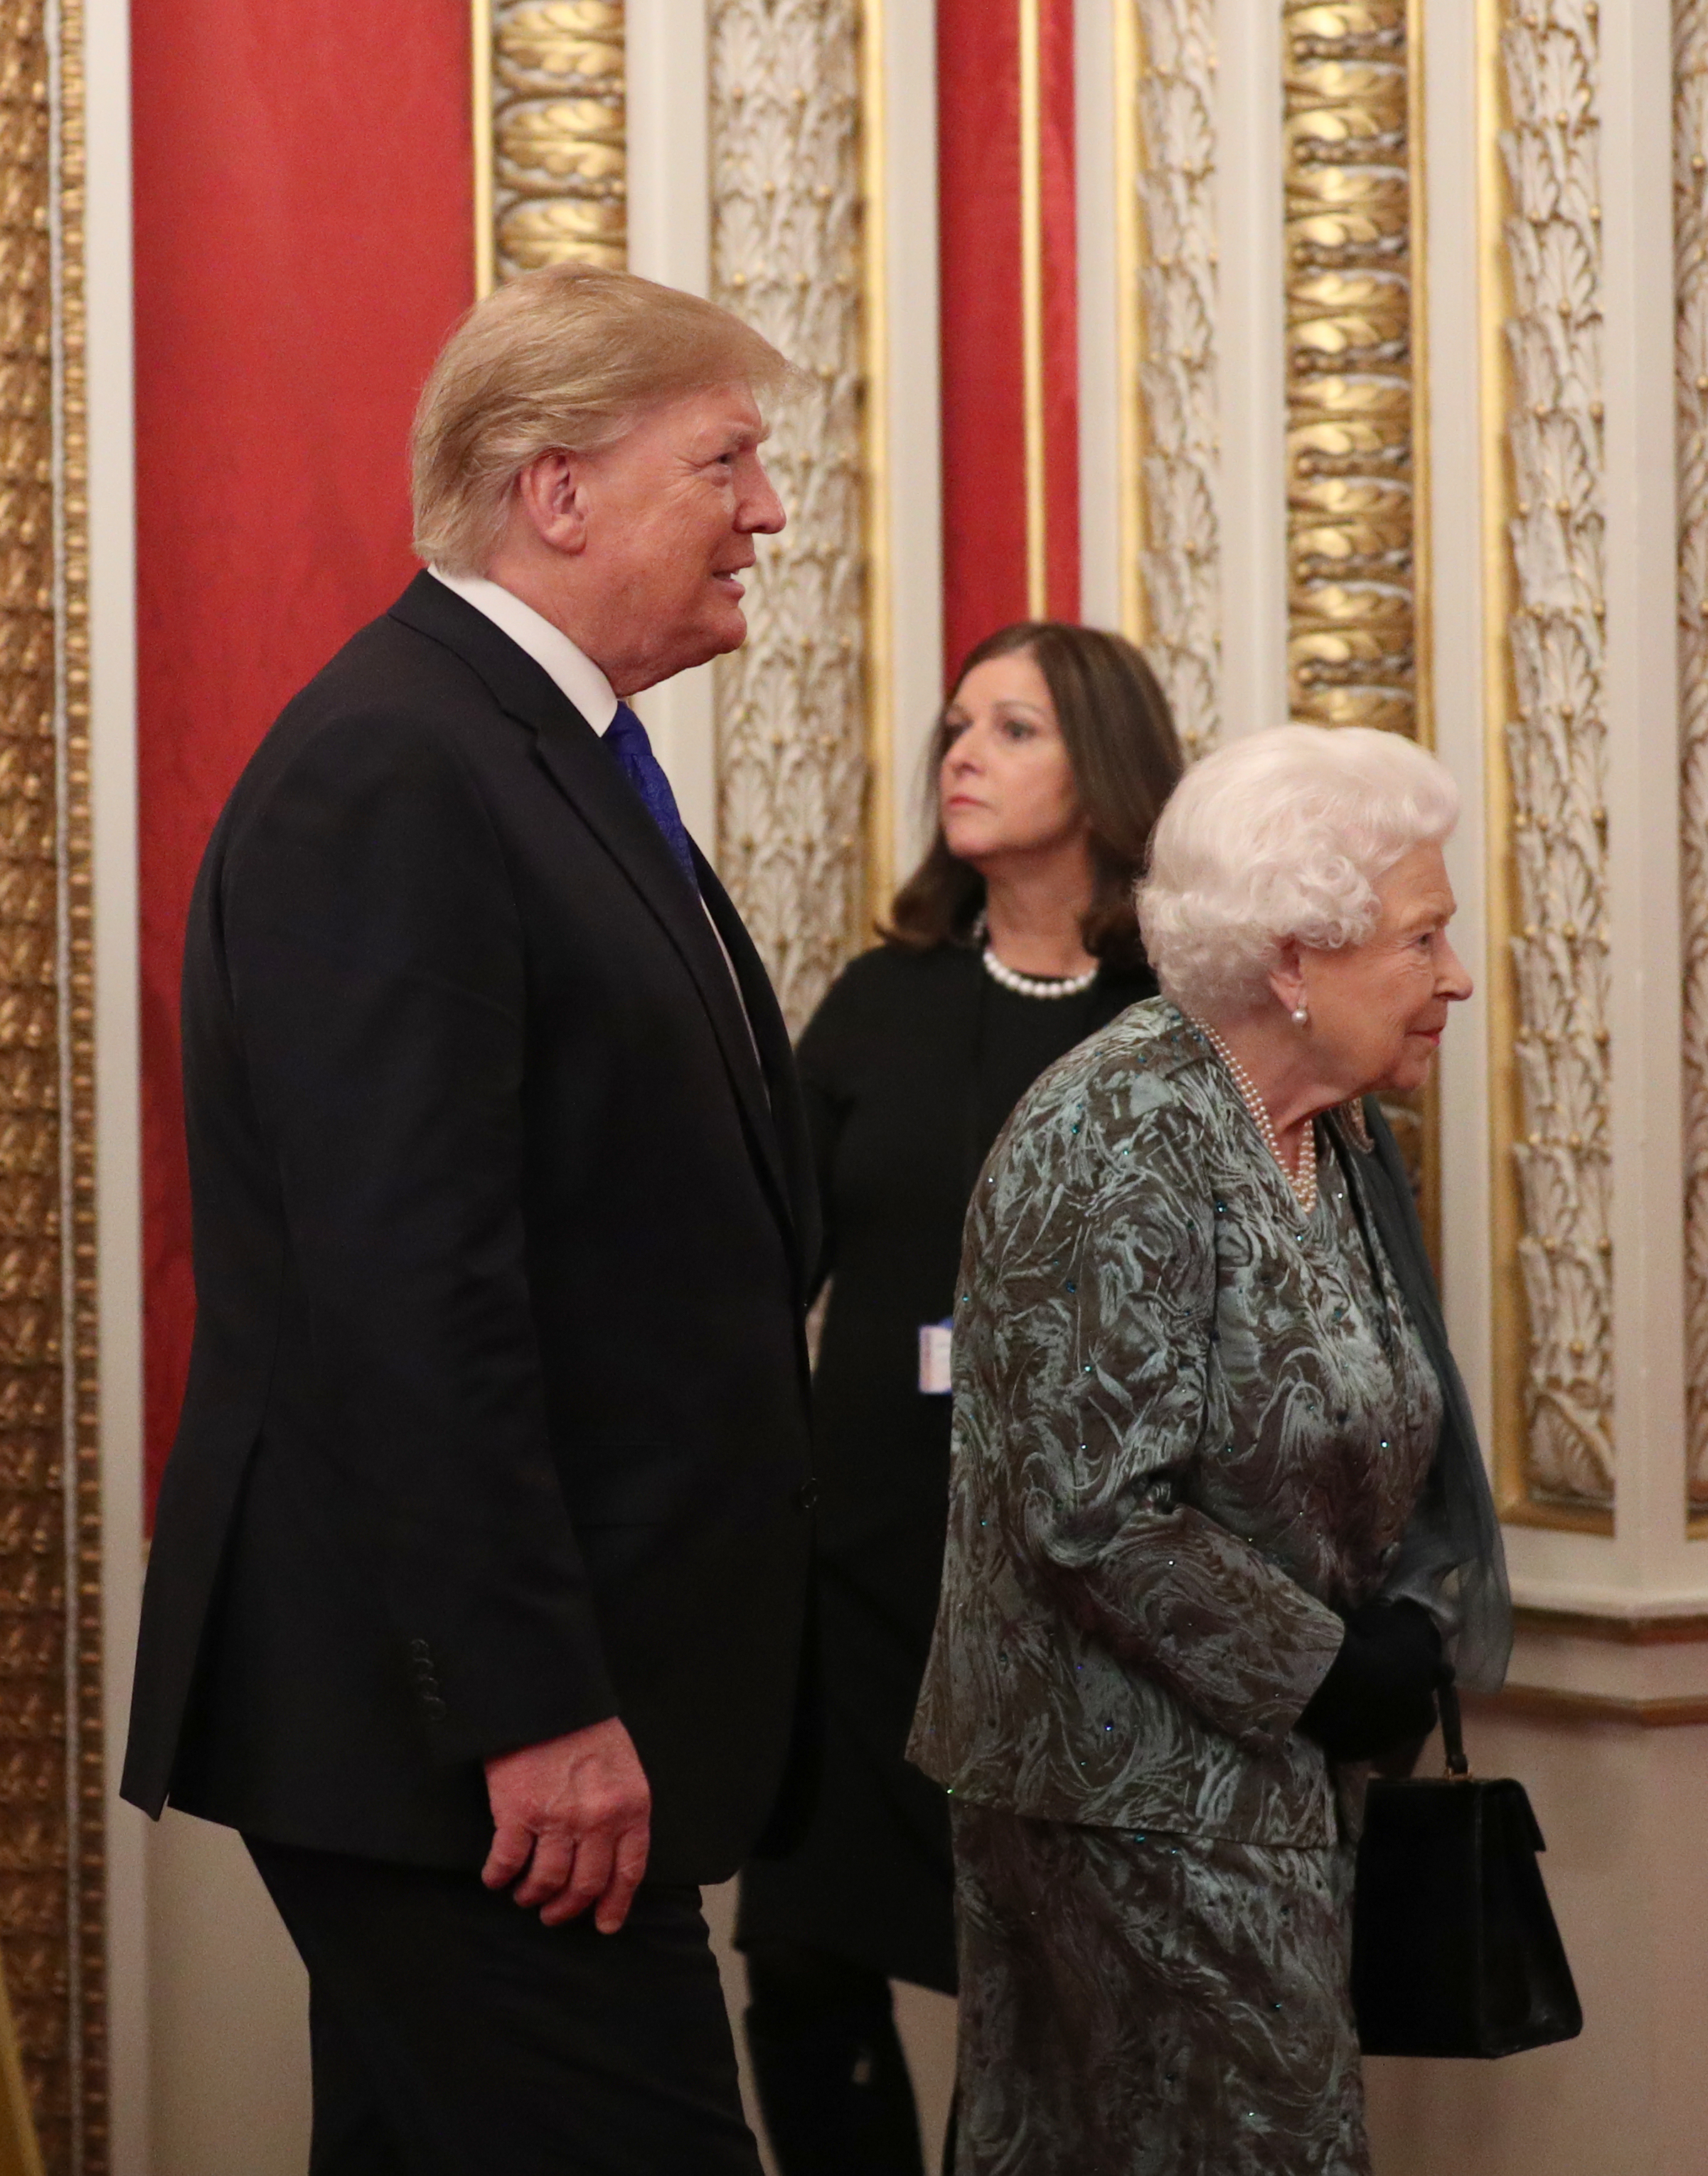 Queen Elizabeth II with US President Donald Trump during a reception at Buckingham Palace, London, as Nato leaders attend to mark 70 years of the alliance.